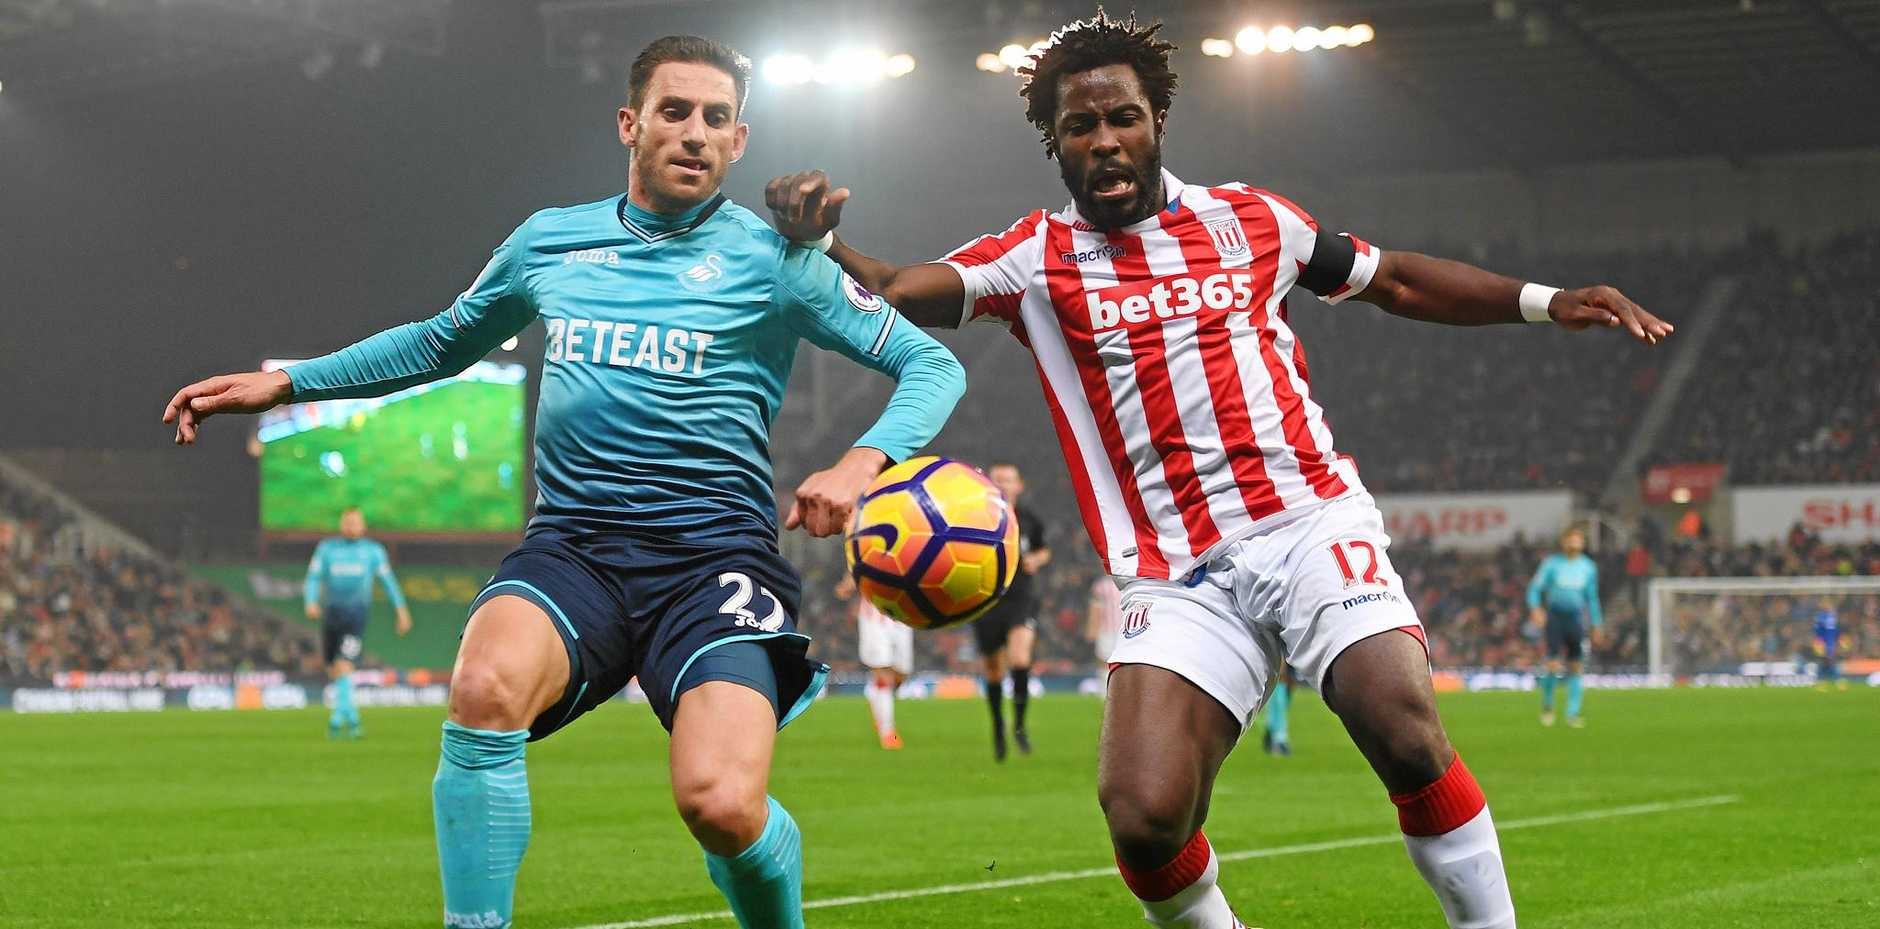 Angel Rangel of Swansea City and Wifried Bony of Stoke City battle for the ball.